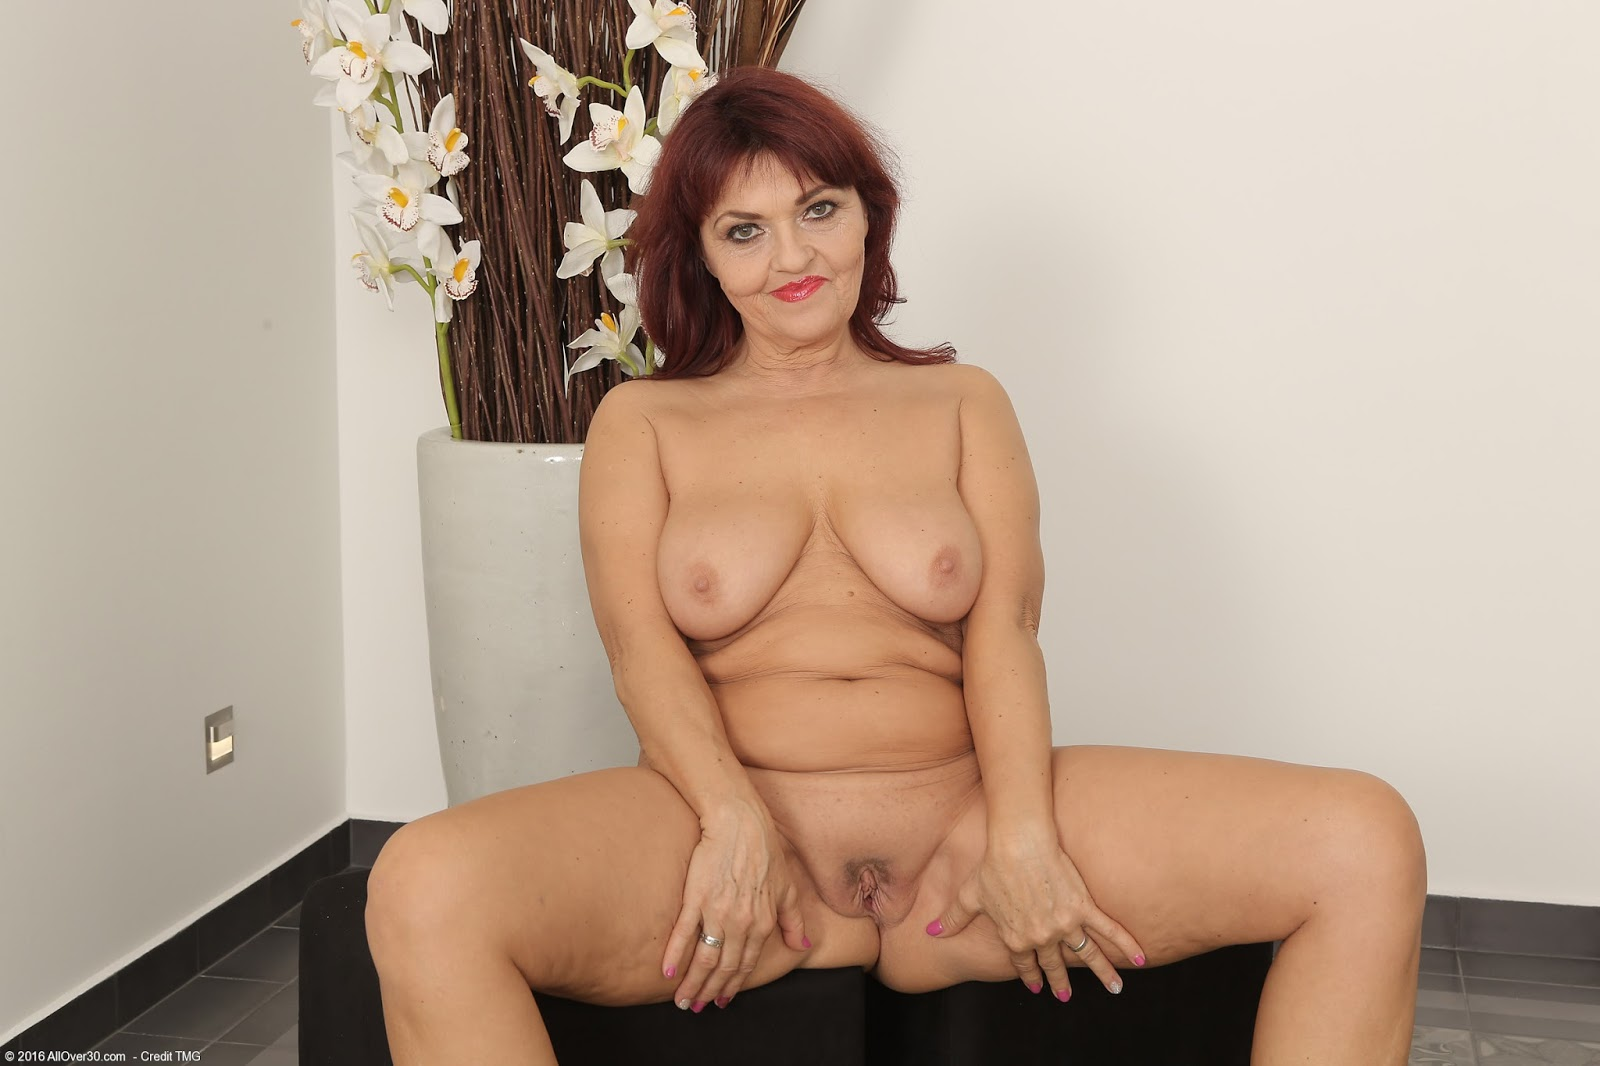 Allover30 Natalia archive of old women natalia muray mature housewives | free